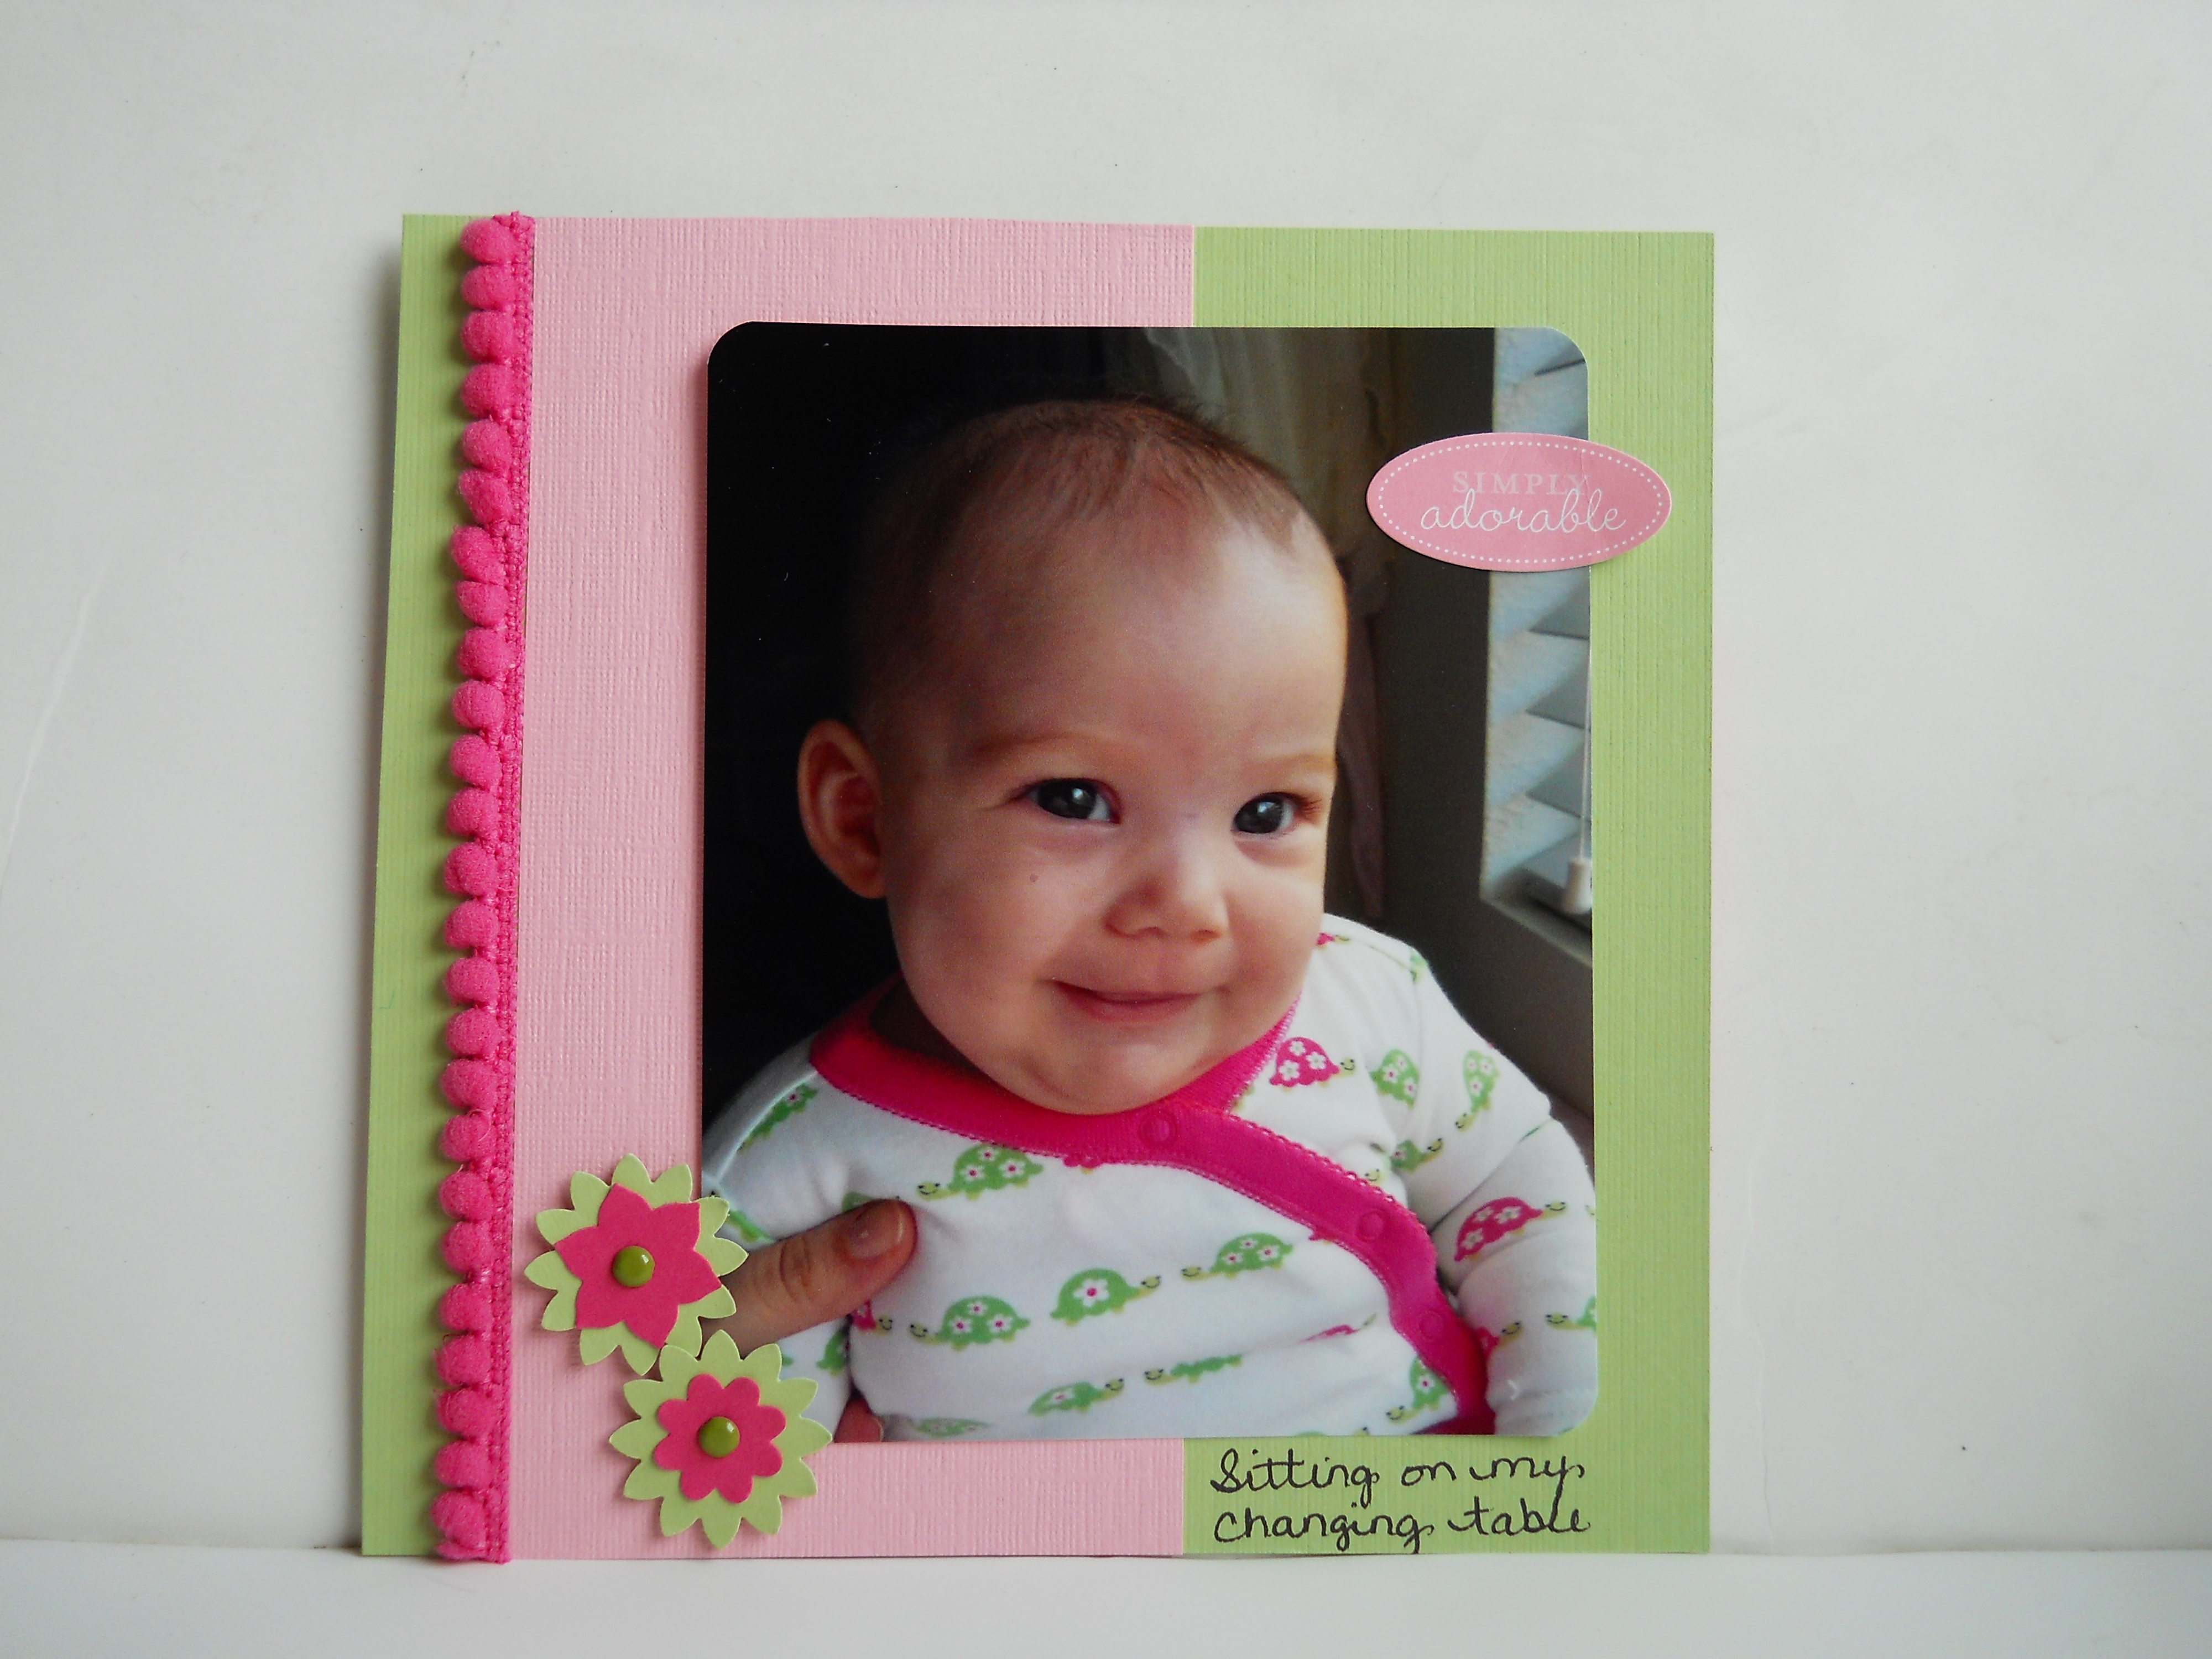 Quick easy scrapbook ideas - These Are Quick And Easy Scrapbook Pages And I M Having Fun With Them Olivia Just Turned 1 So These Infant Photos Are A Trip Down Memory Lane